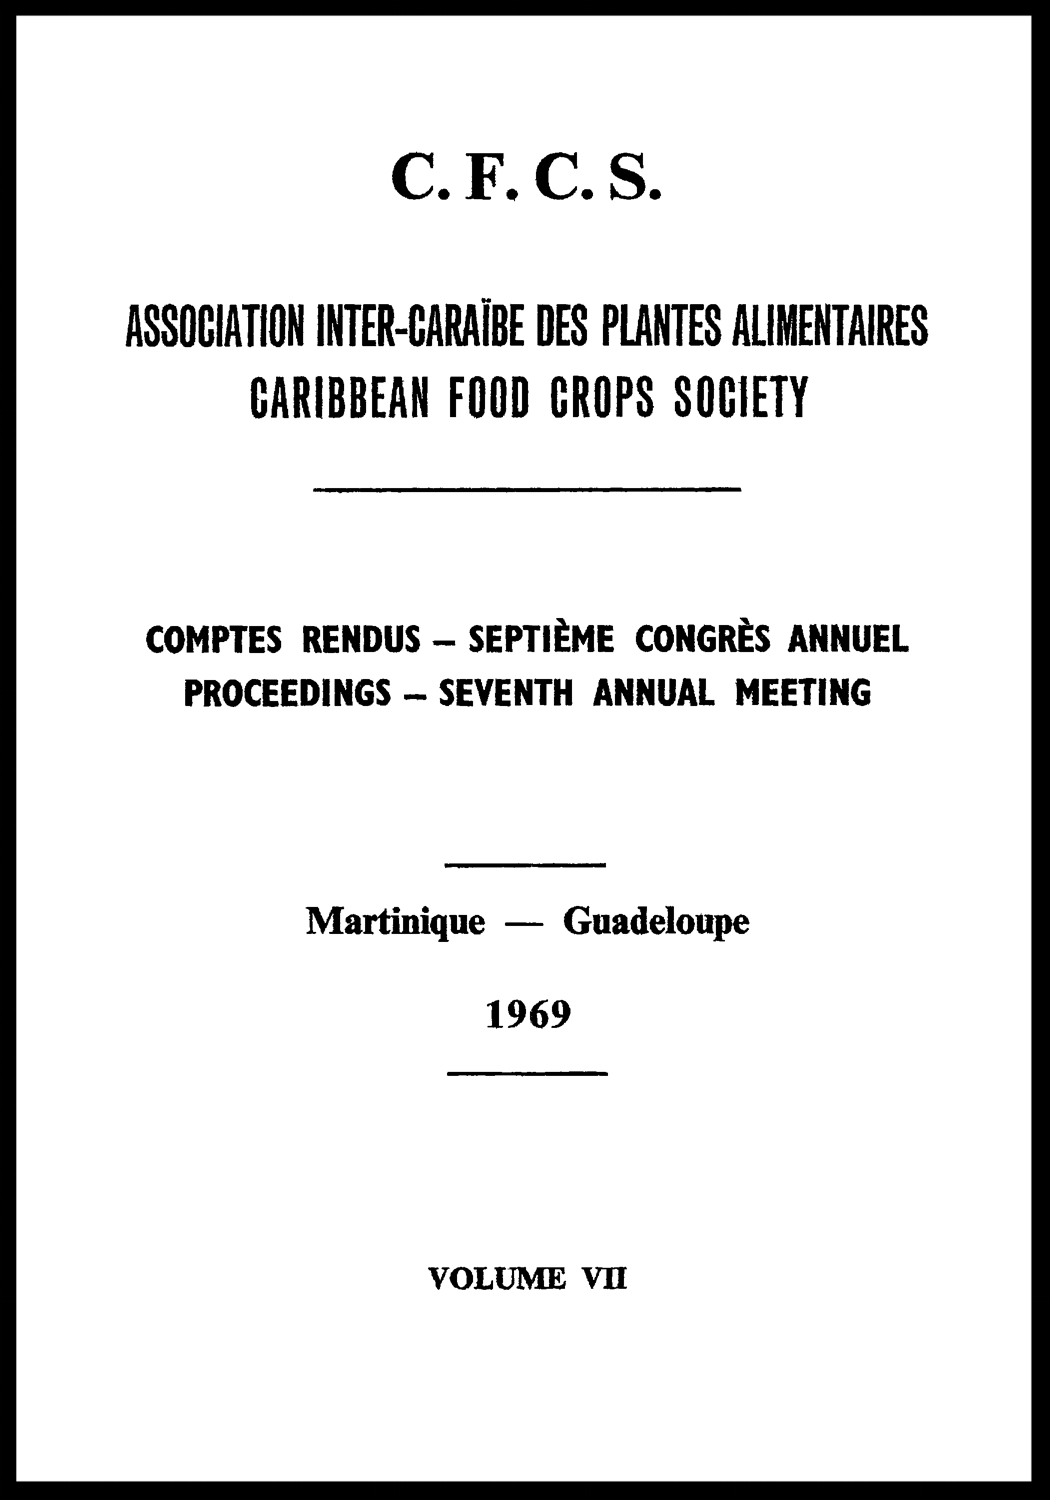 1969, Vol. 7. Martinique, GP